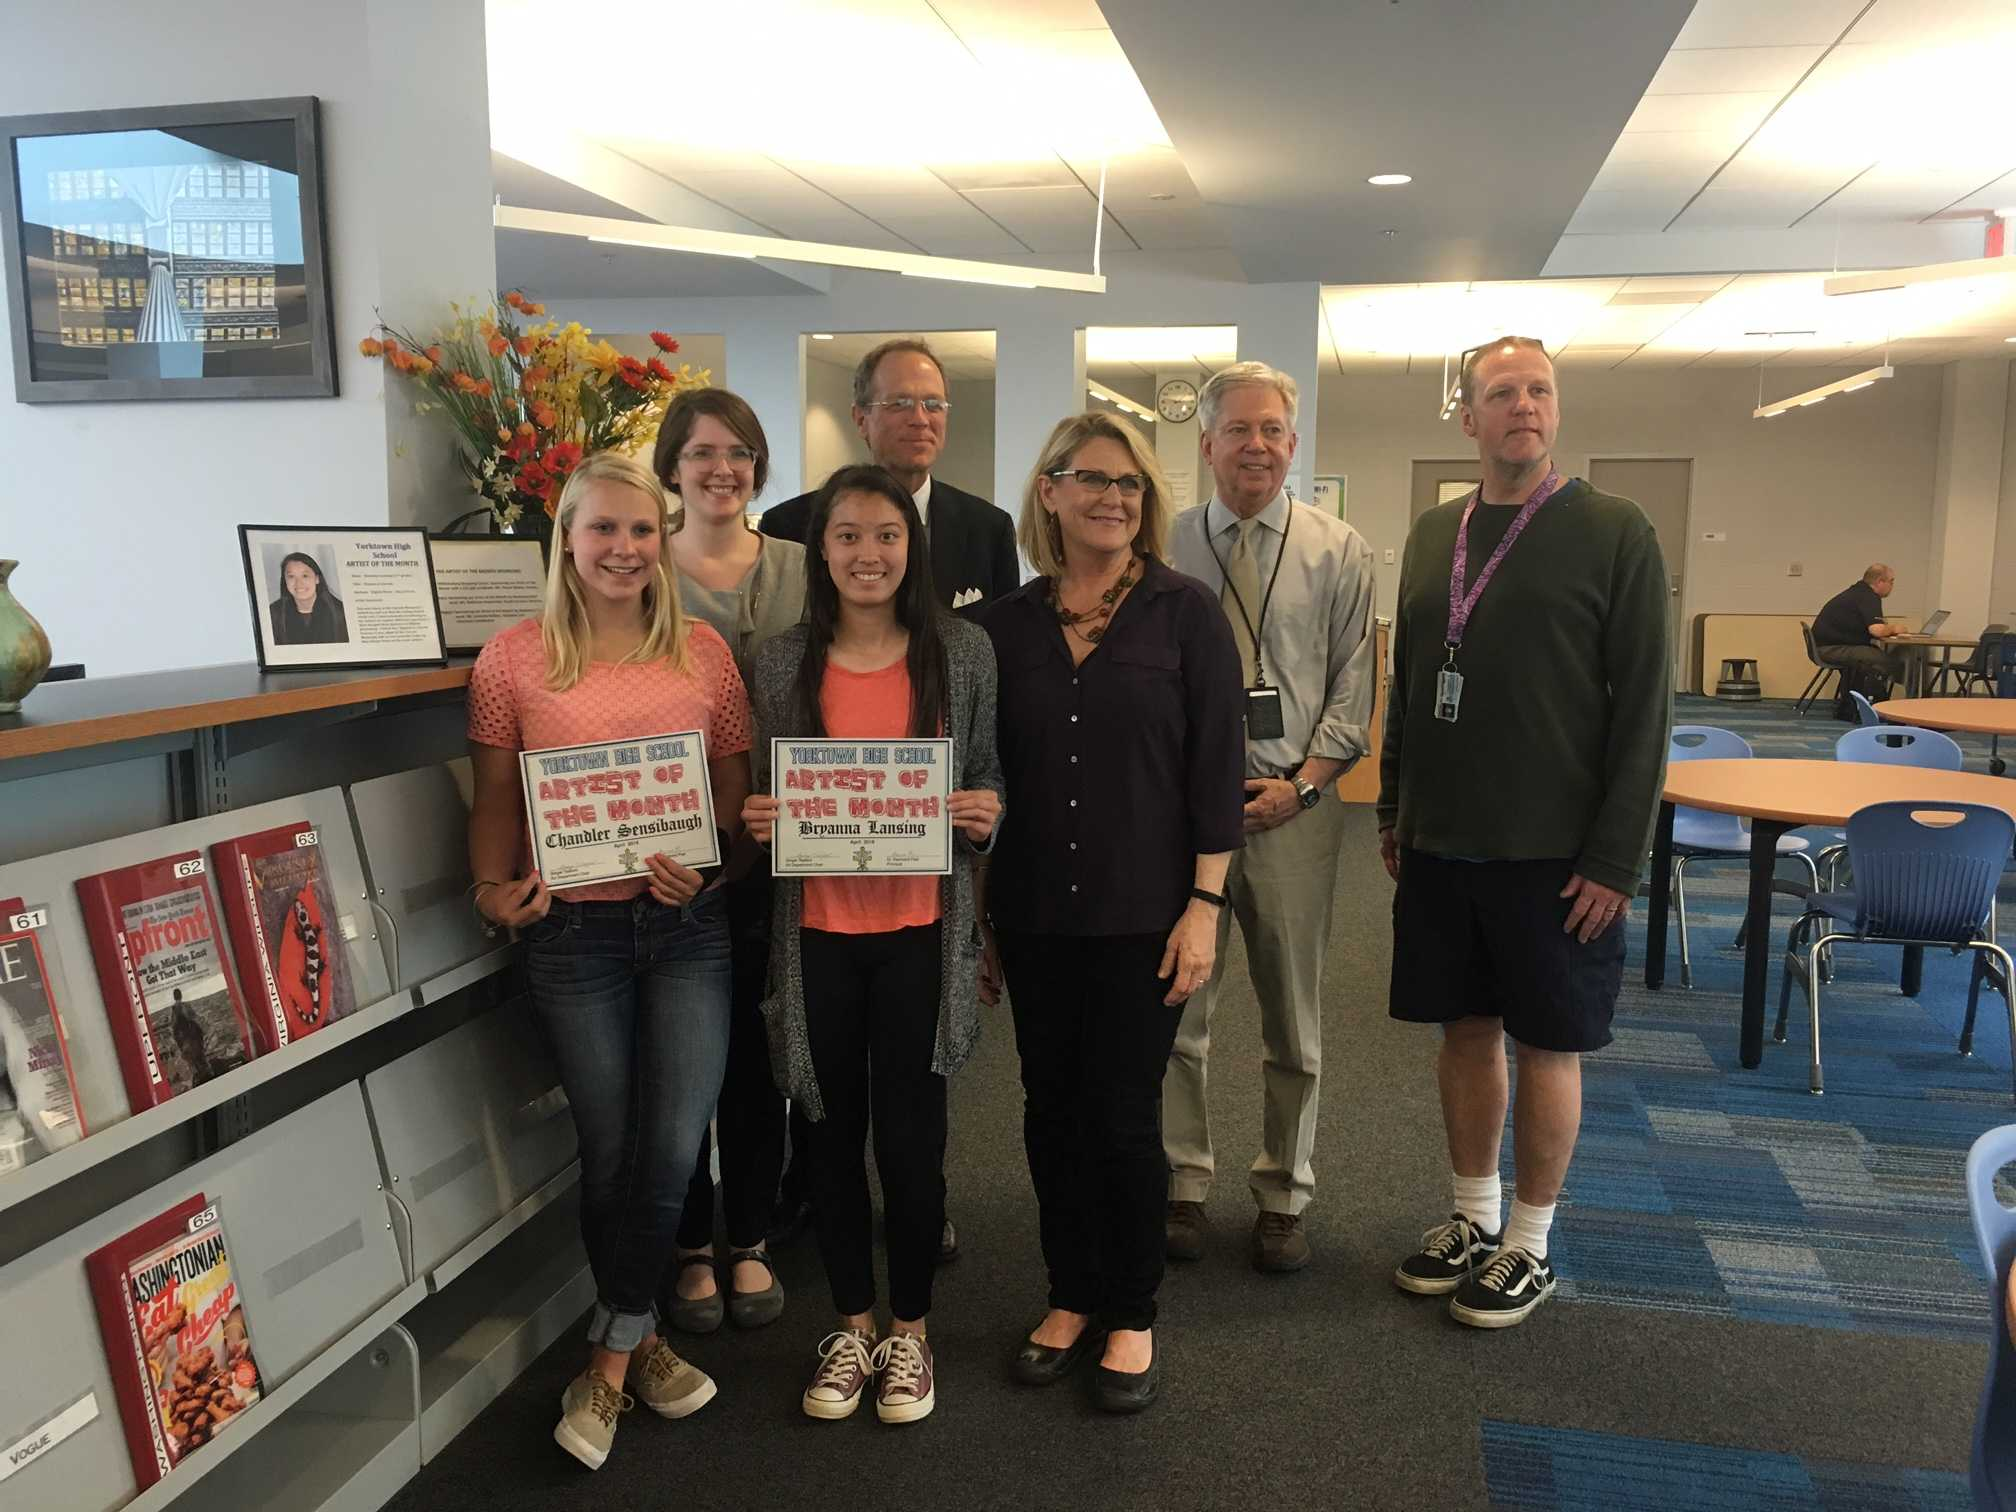 Juniors Chandler Sensibaugh (left) and Bryanna Lansing (front center left) accepting the award of Artist of the Month